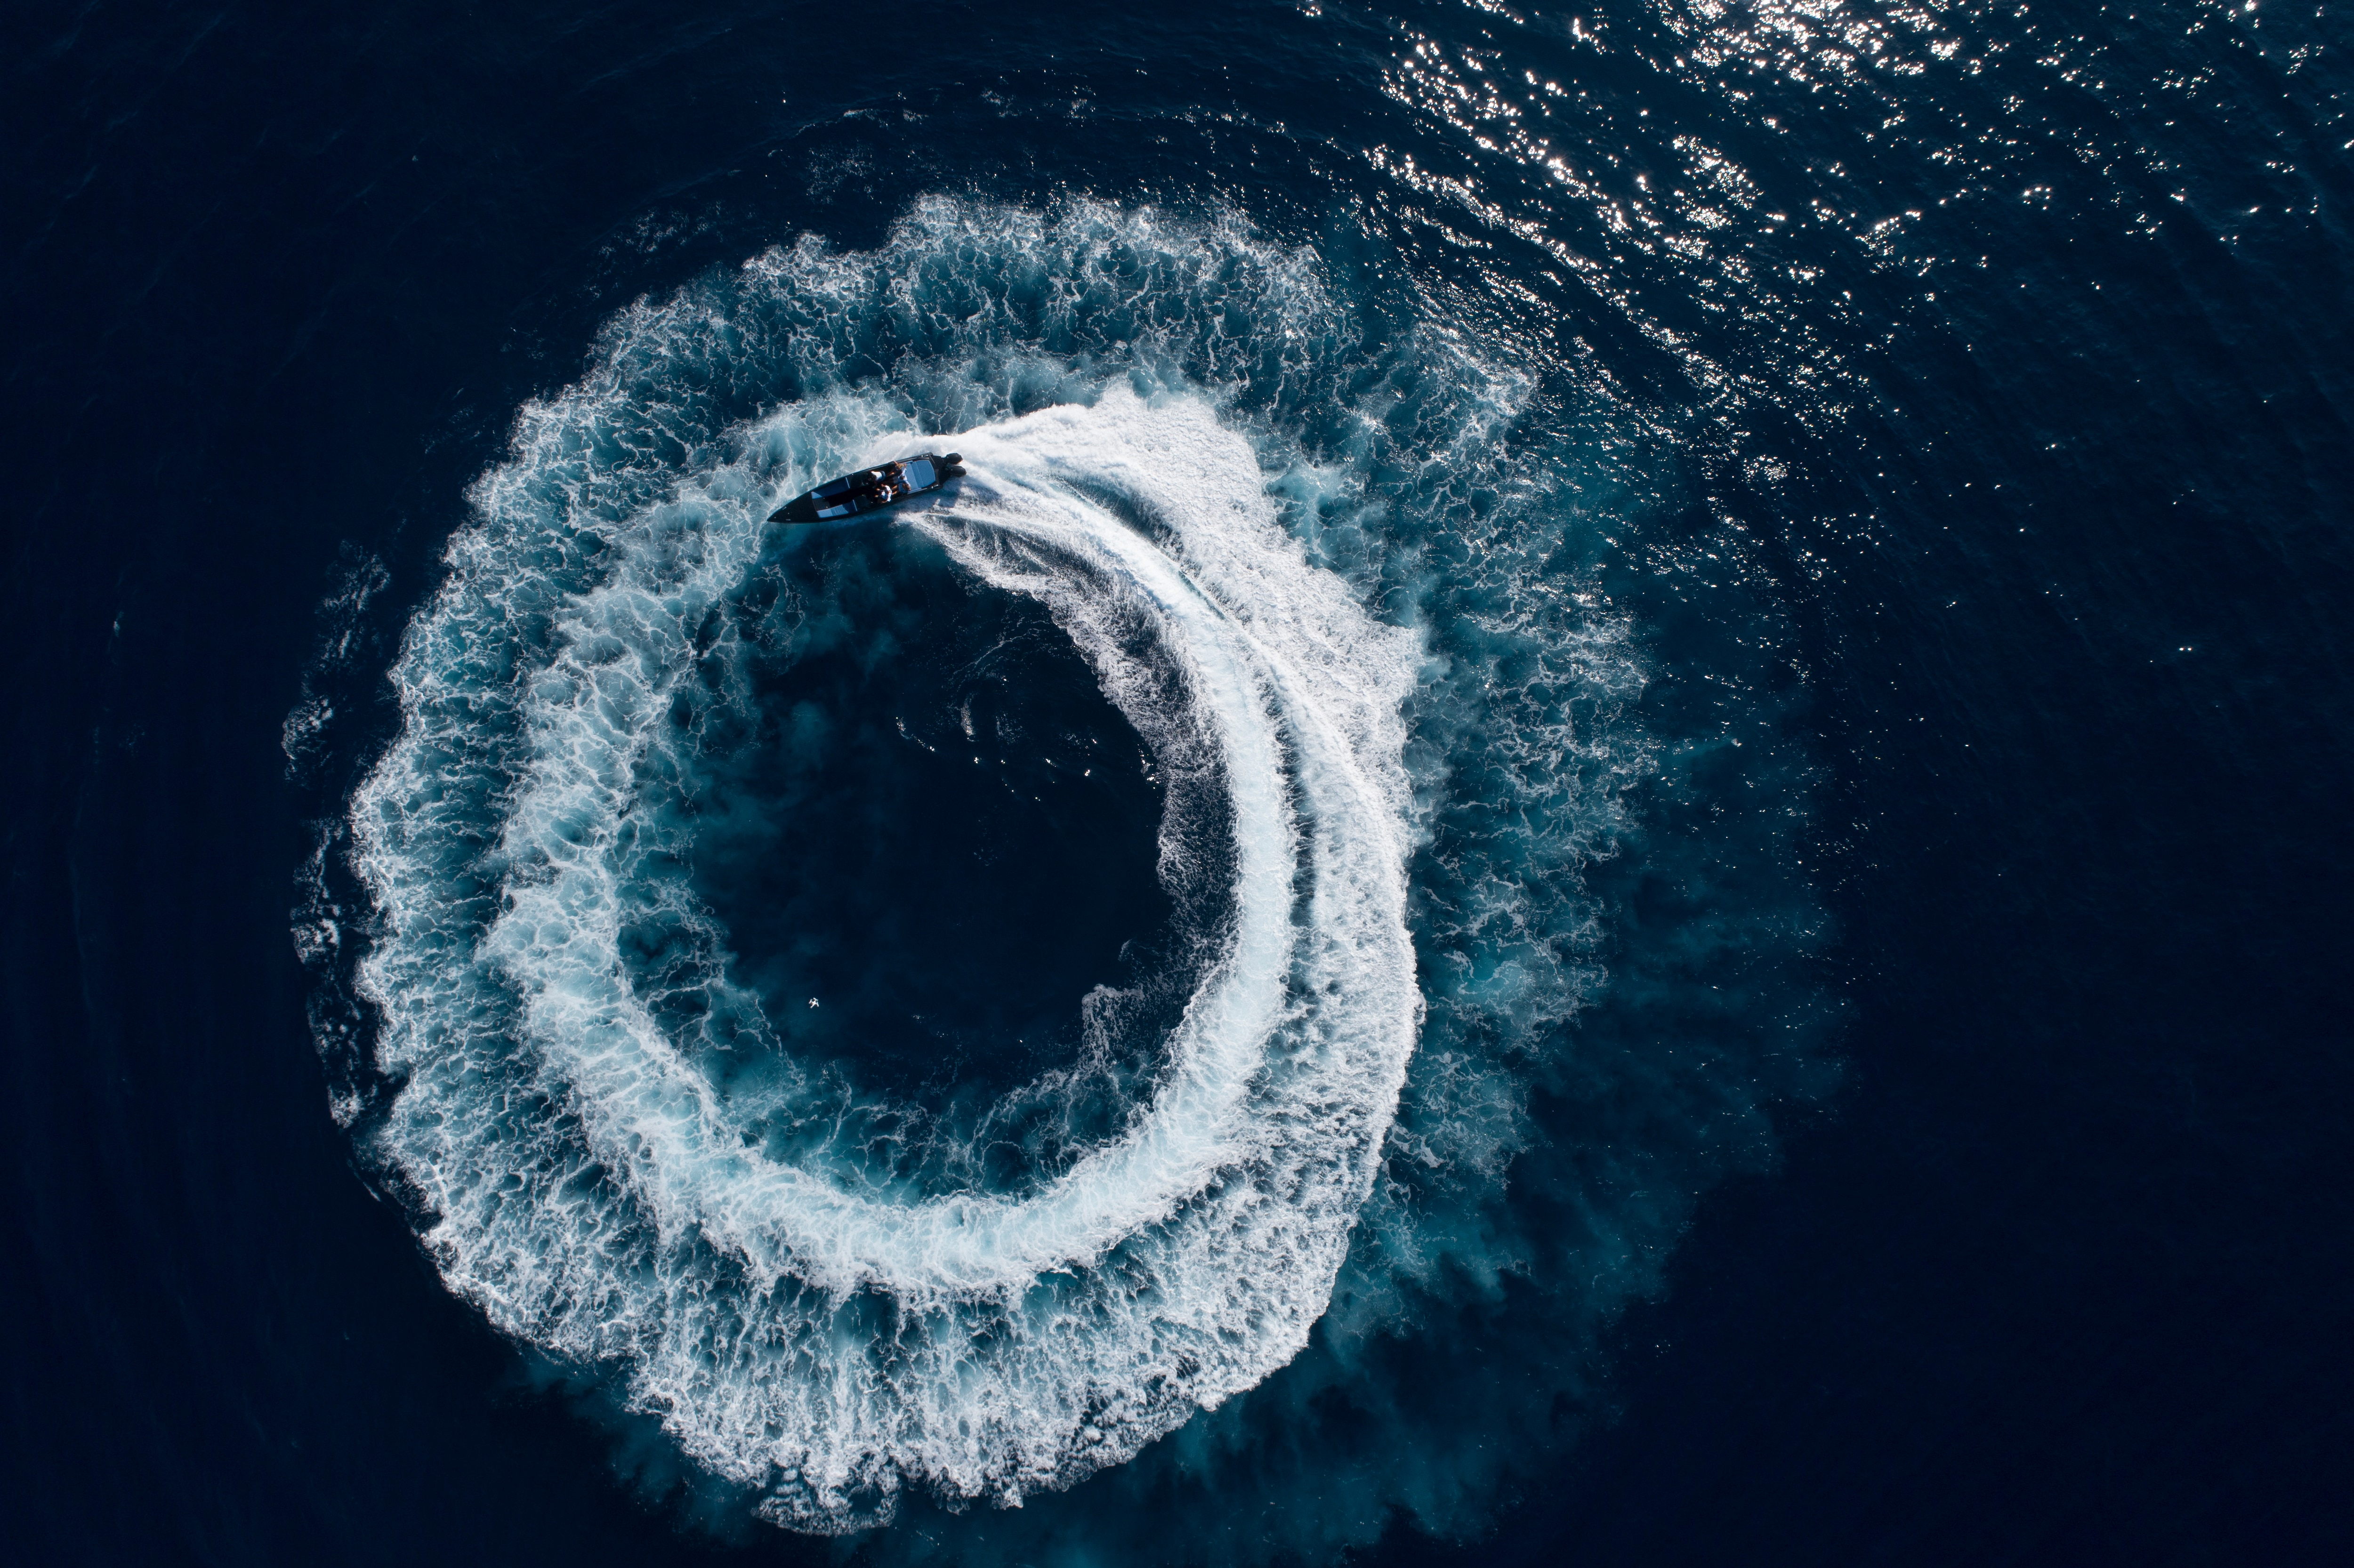 Bird view of a boat doing large circles in the watter